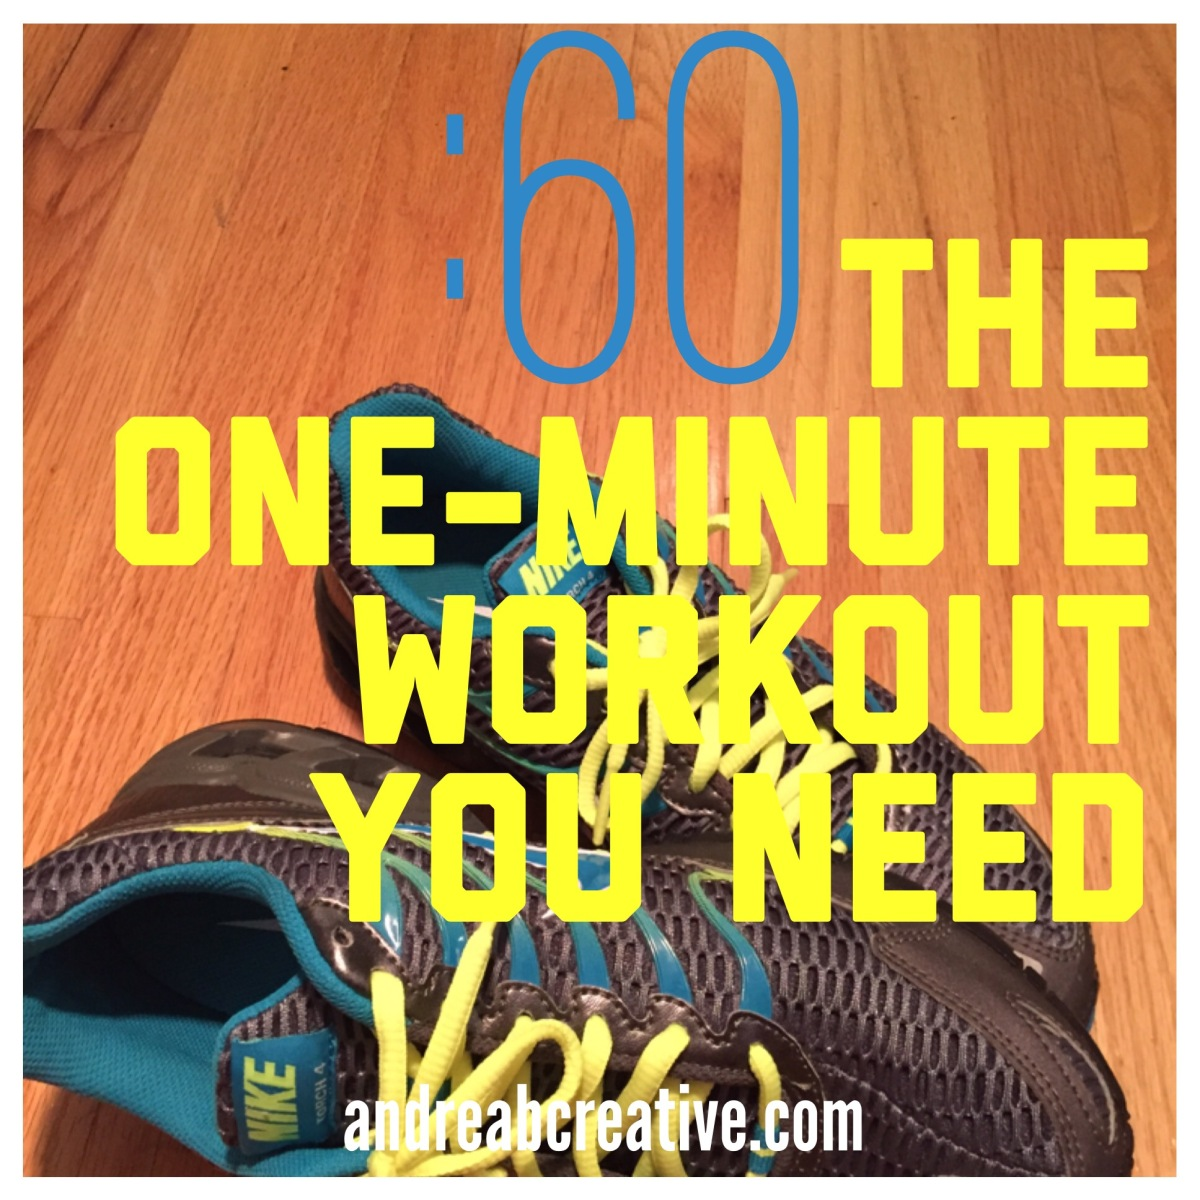 The 1-minute workout! Helps you lose inches and will change your life